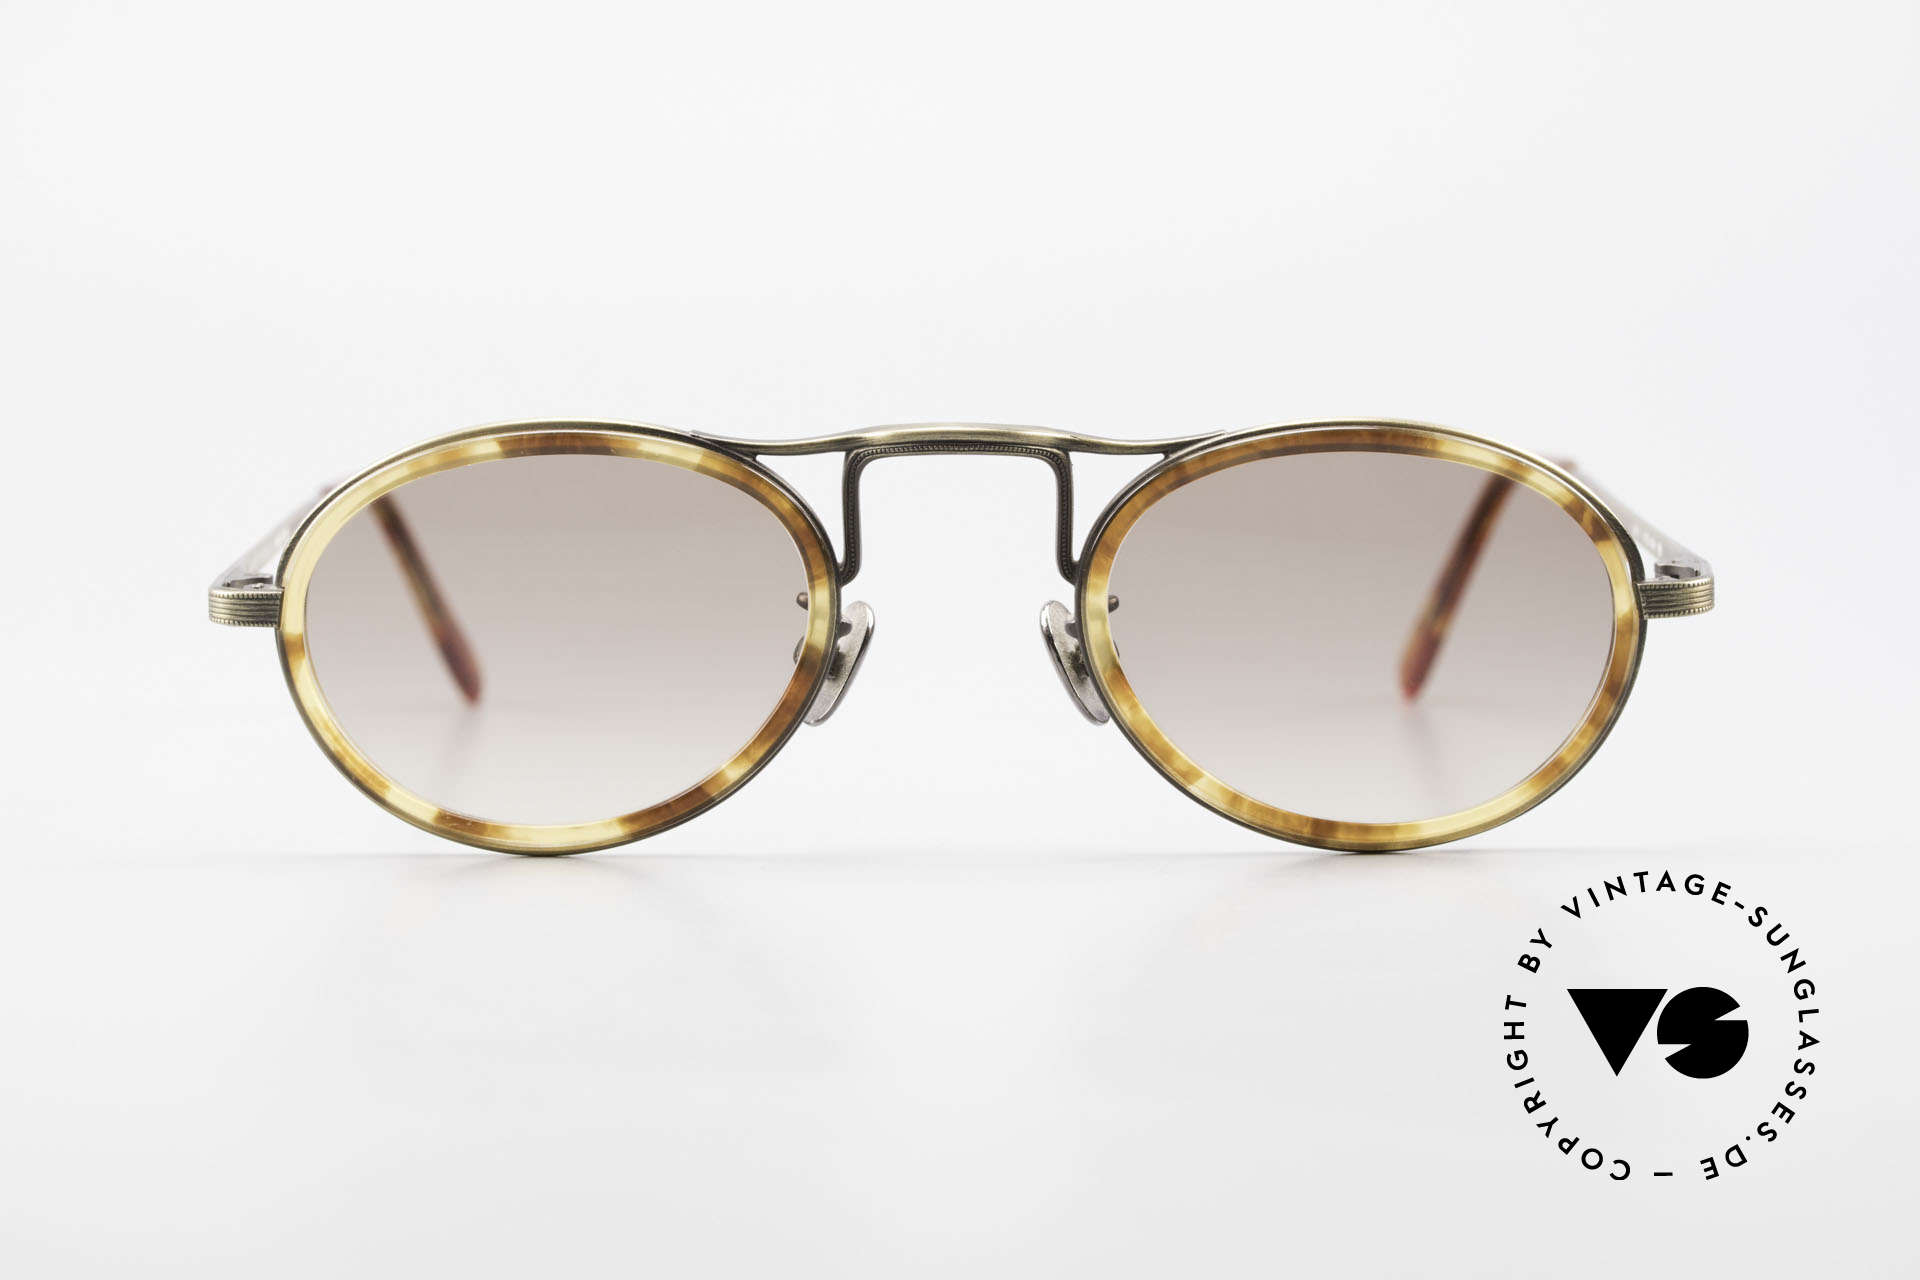 Oliver Peoples MP1 Vintage Designer Frame Oval, luxury glasses: a lifestyle that is distinctly Los Angeles, Made for Men and Women